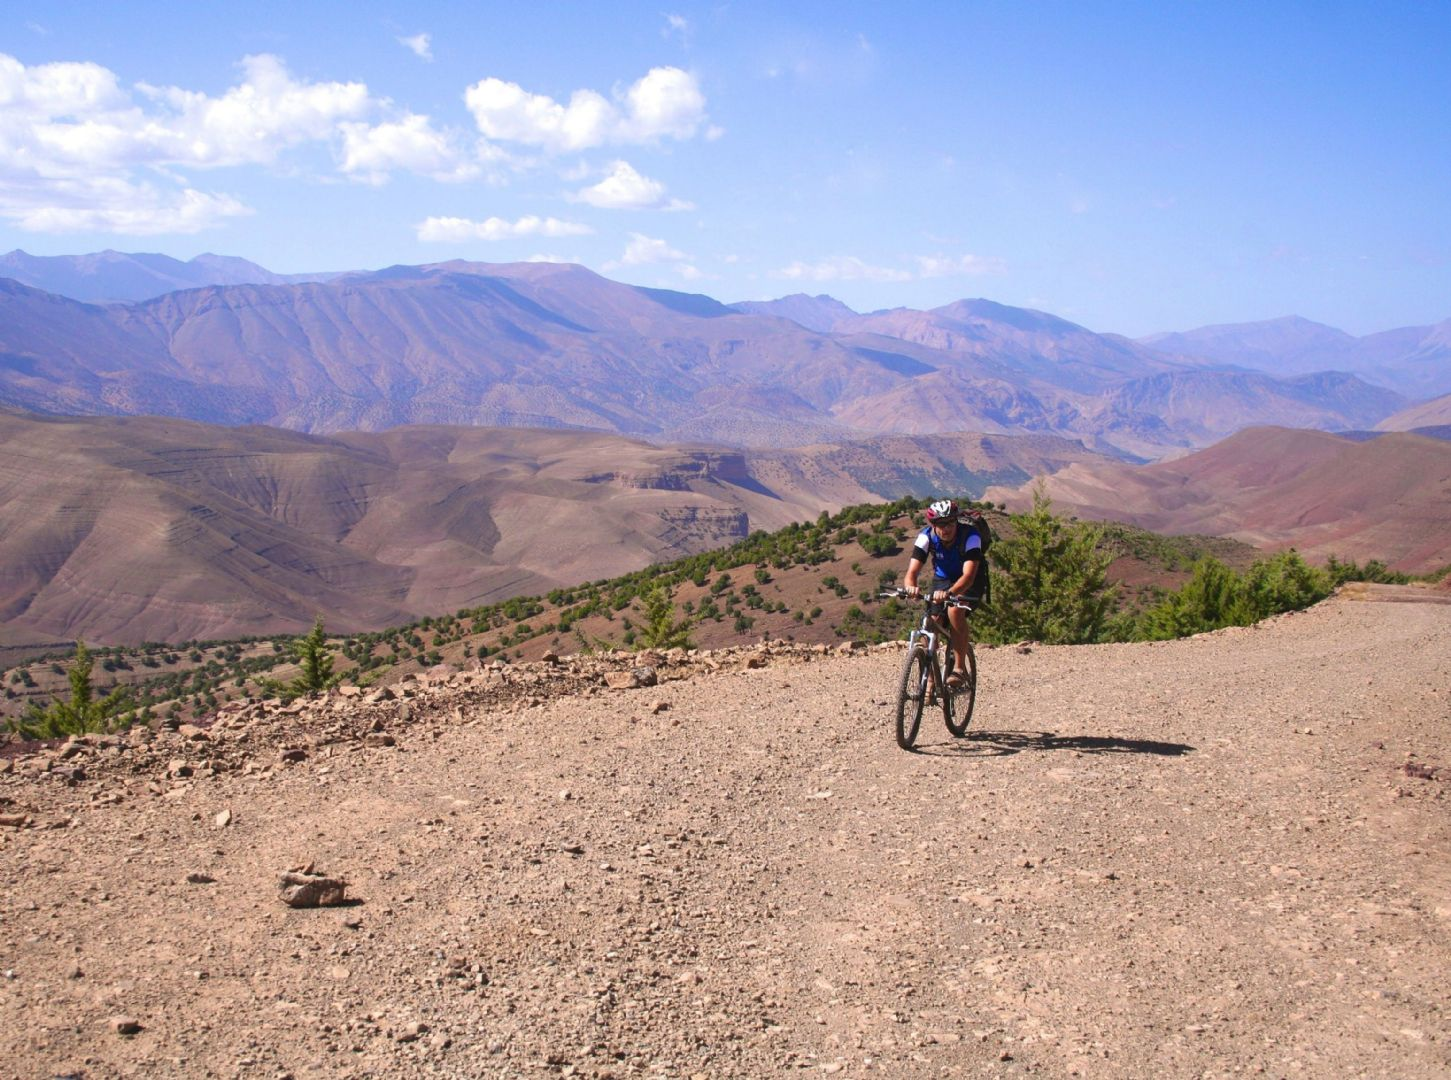 _Holiday.275.3817.jpg - Morocco - High Atlas Traverse - Guided Mountain Bike Holiday - Mountain Biking